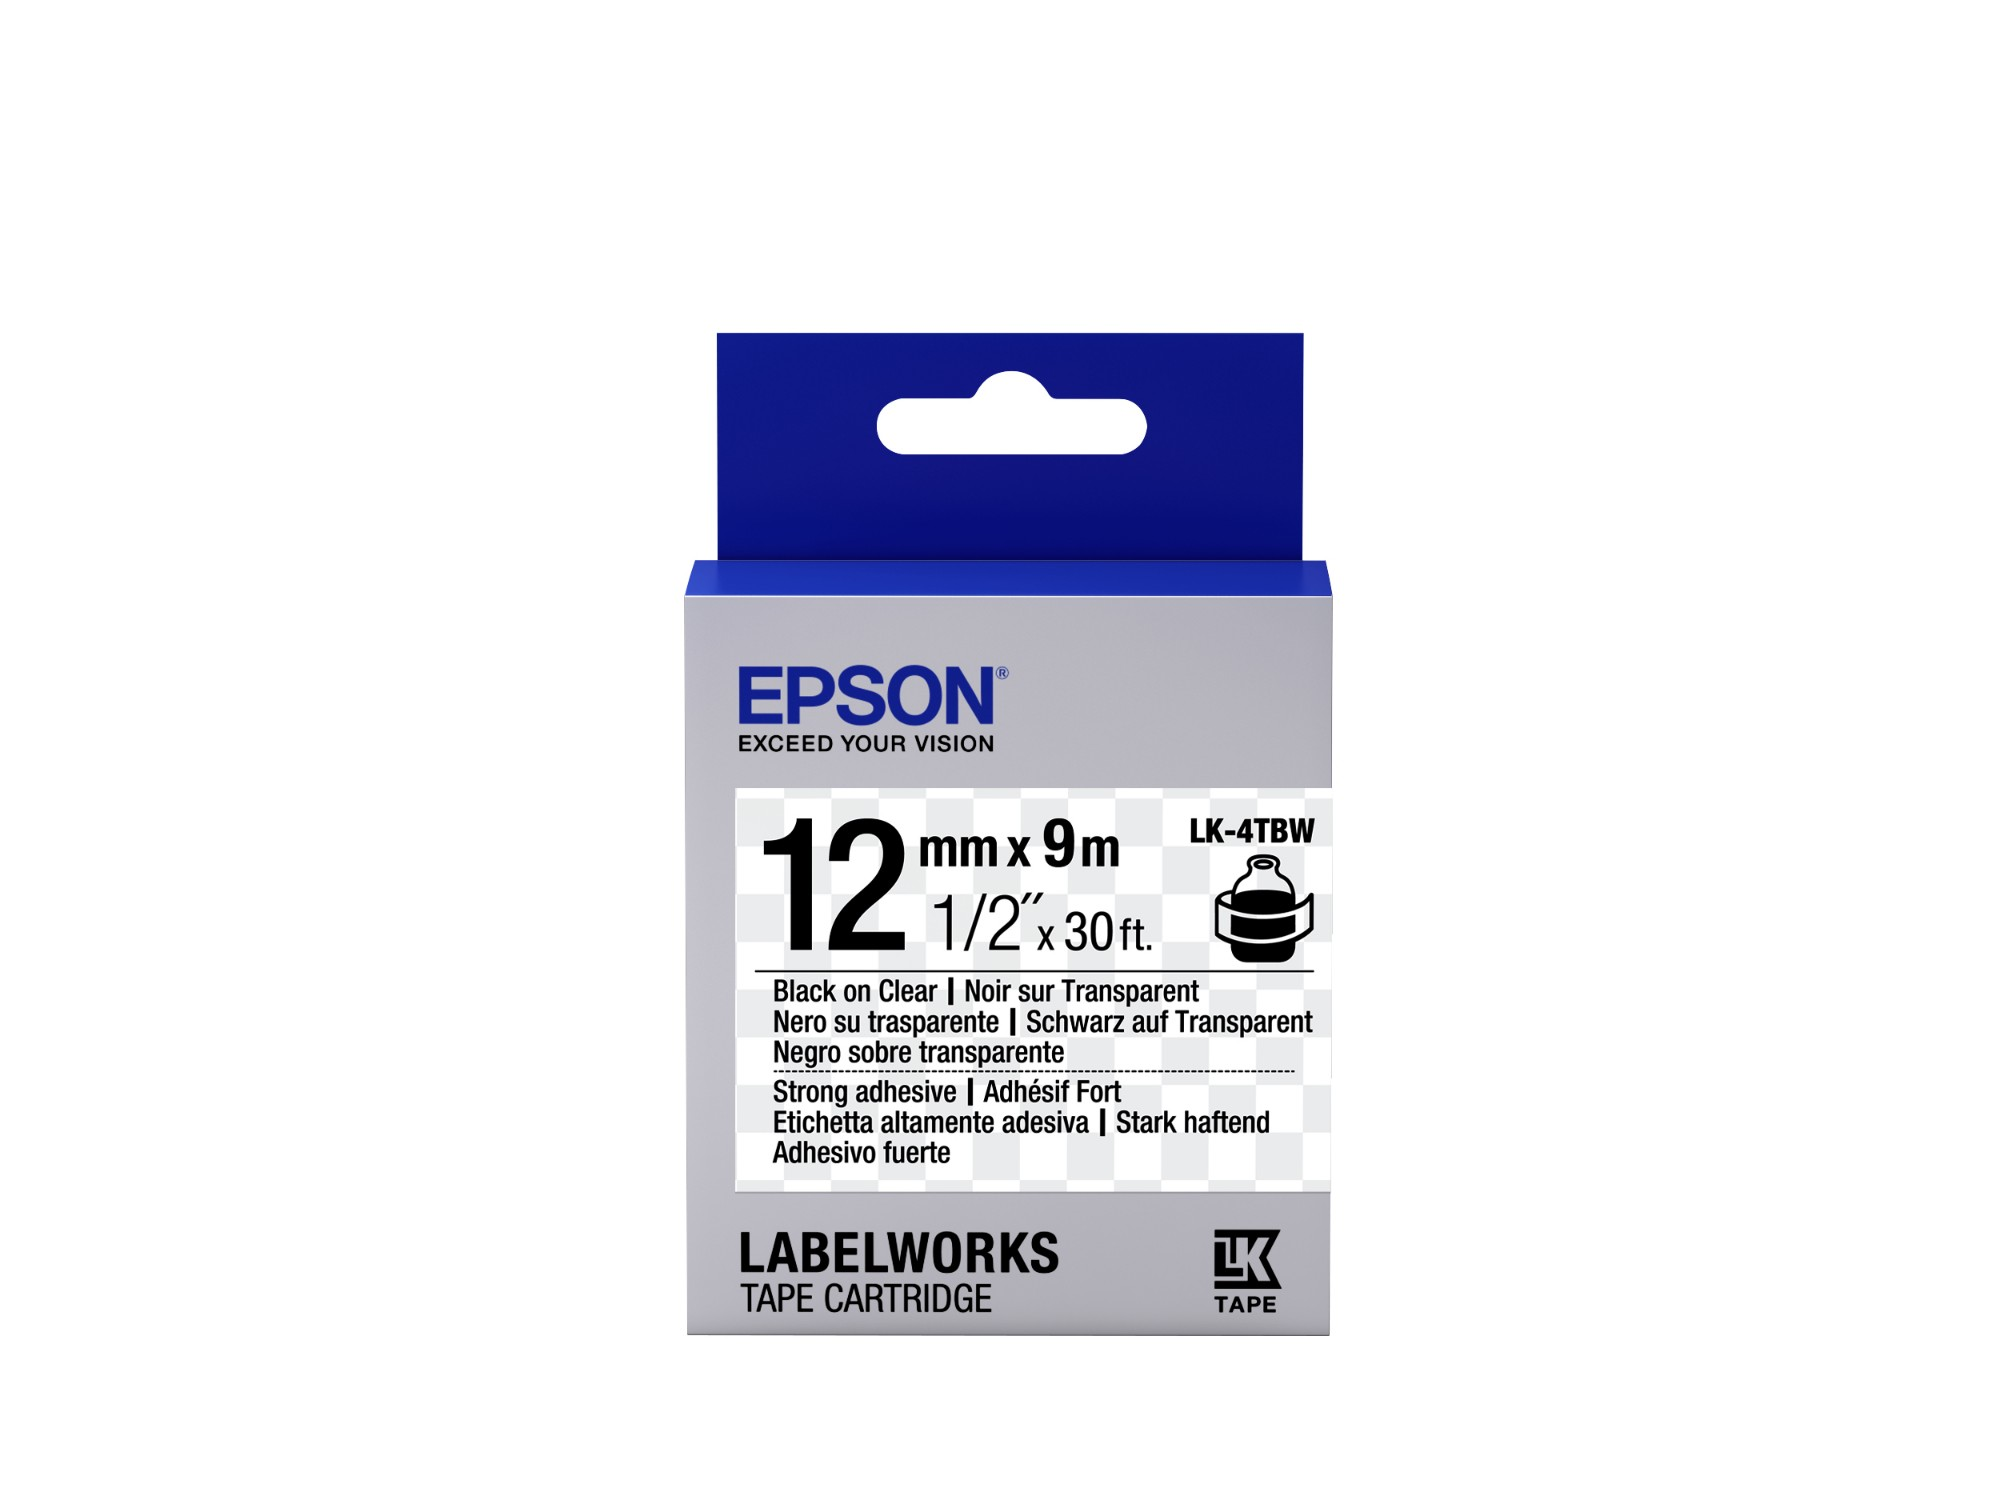 Epson Strong Adhesive Tape - LK-4TBW Strng adh Blk/Clear 12/9